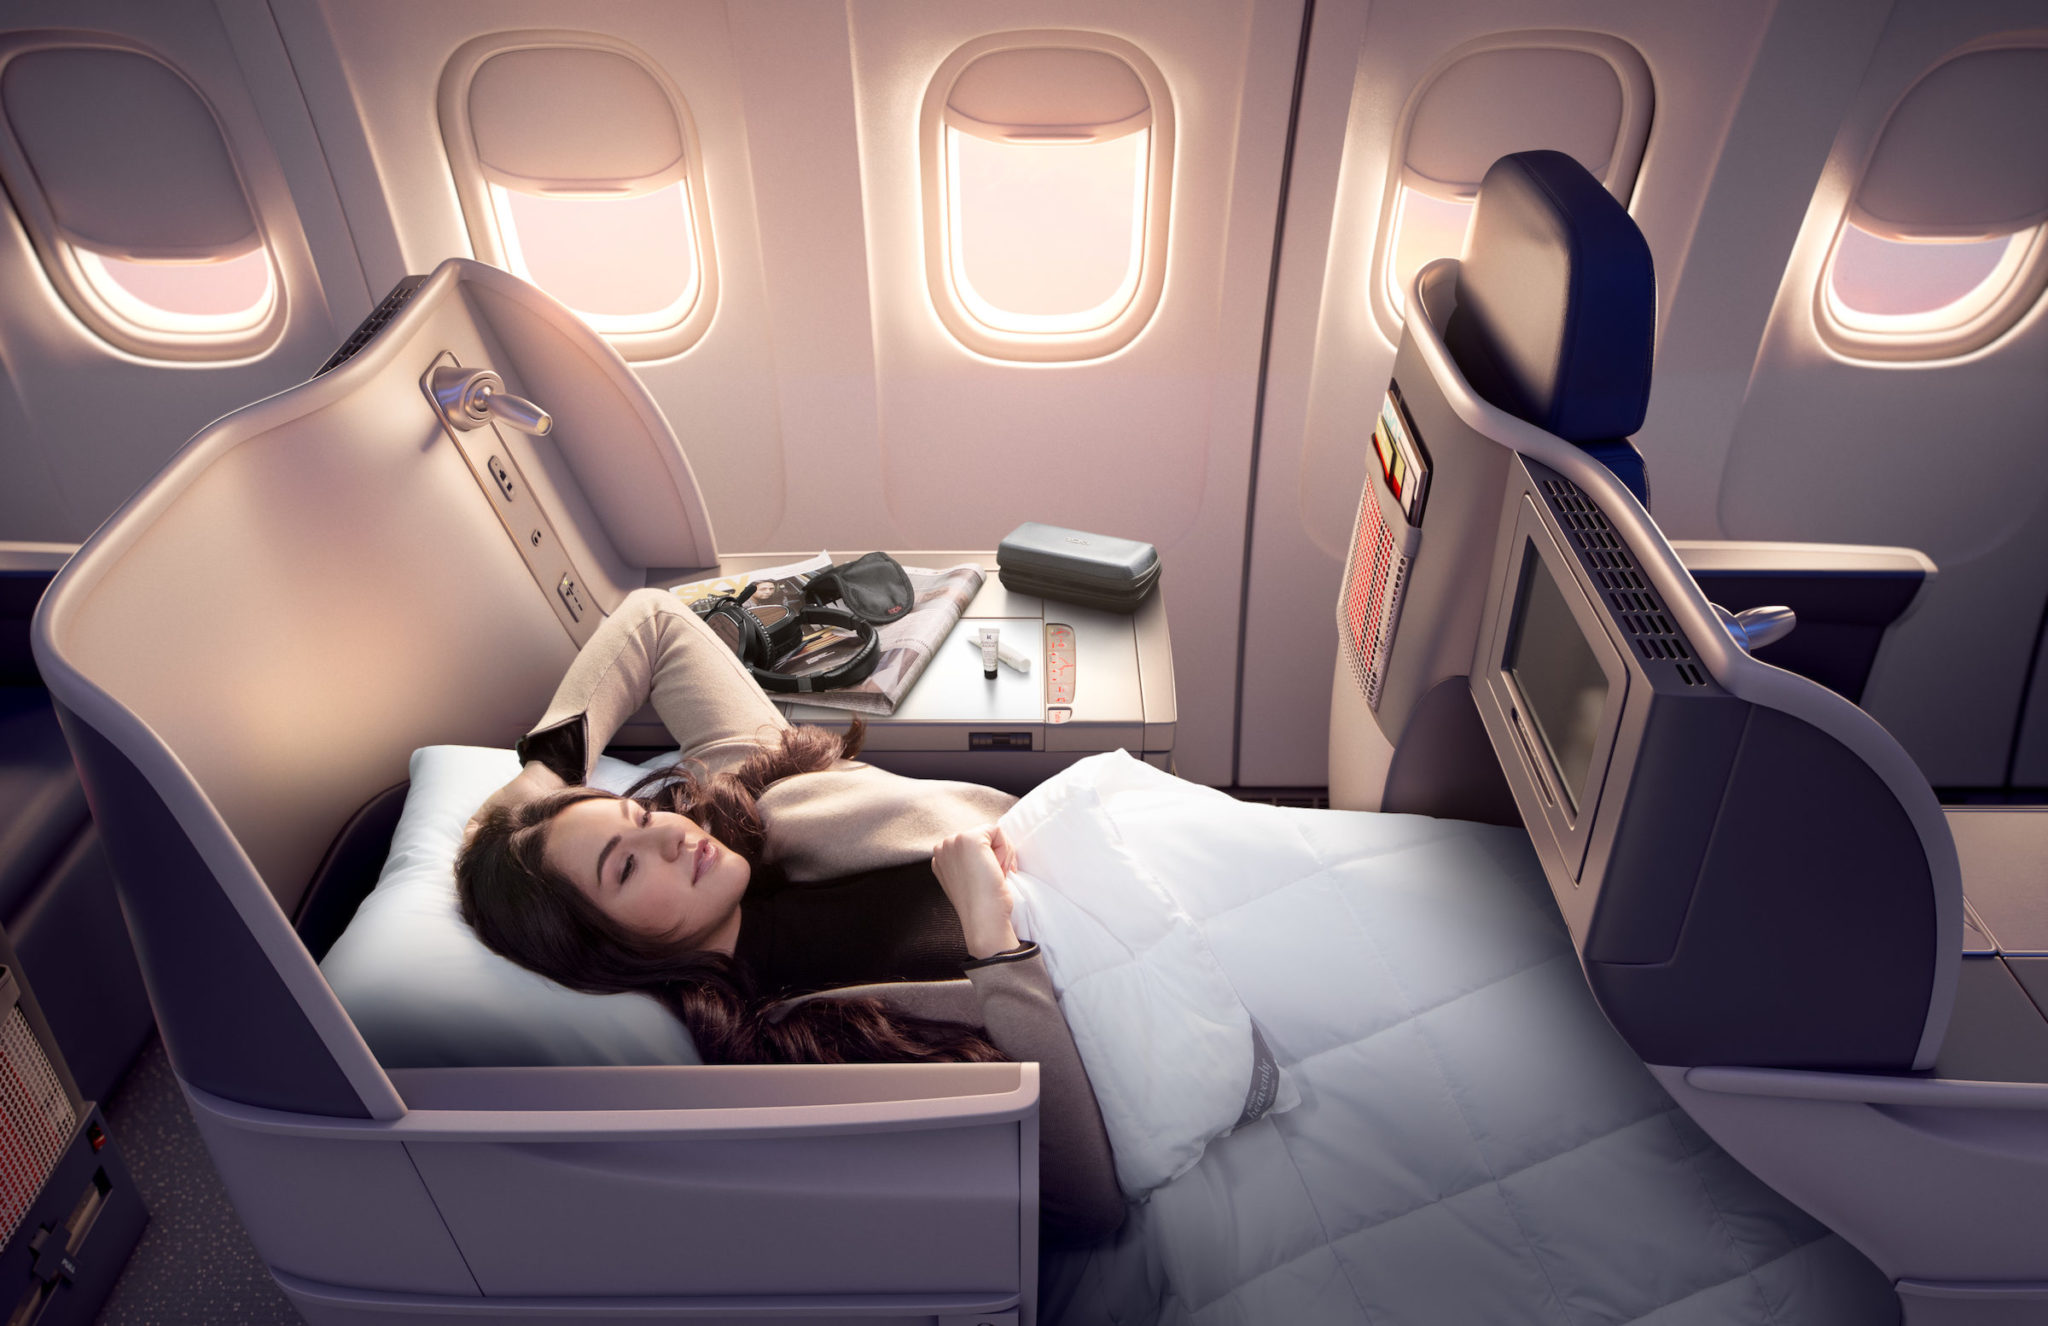 Delta One Boeing 767 Business Class Is